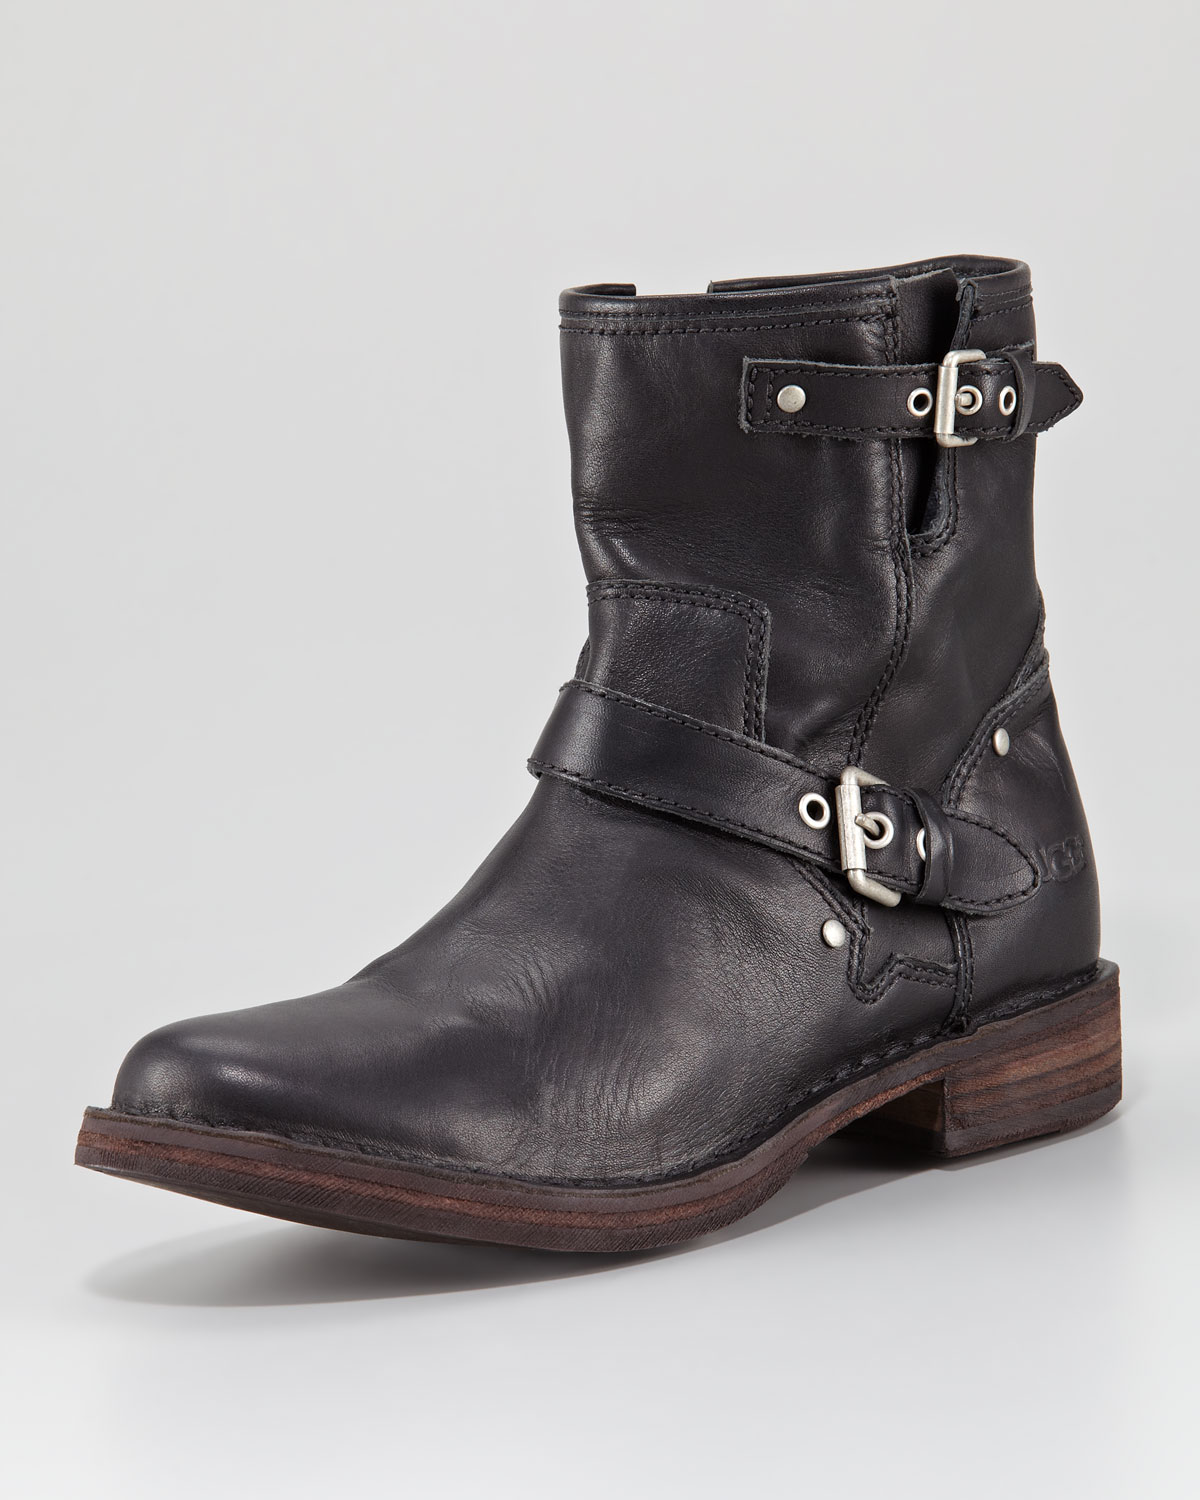 Ugg Fabrizia Leather Motorcycle Boot In Black Lyst